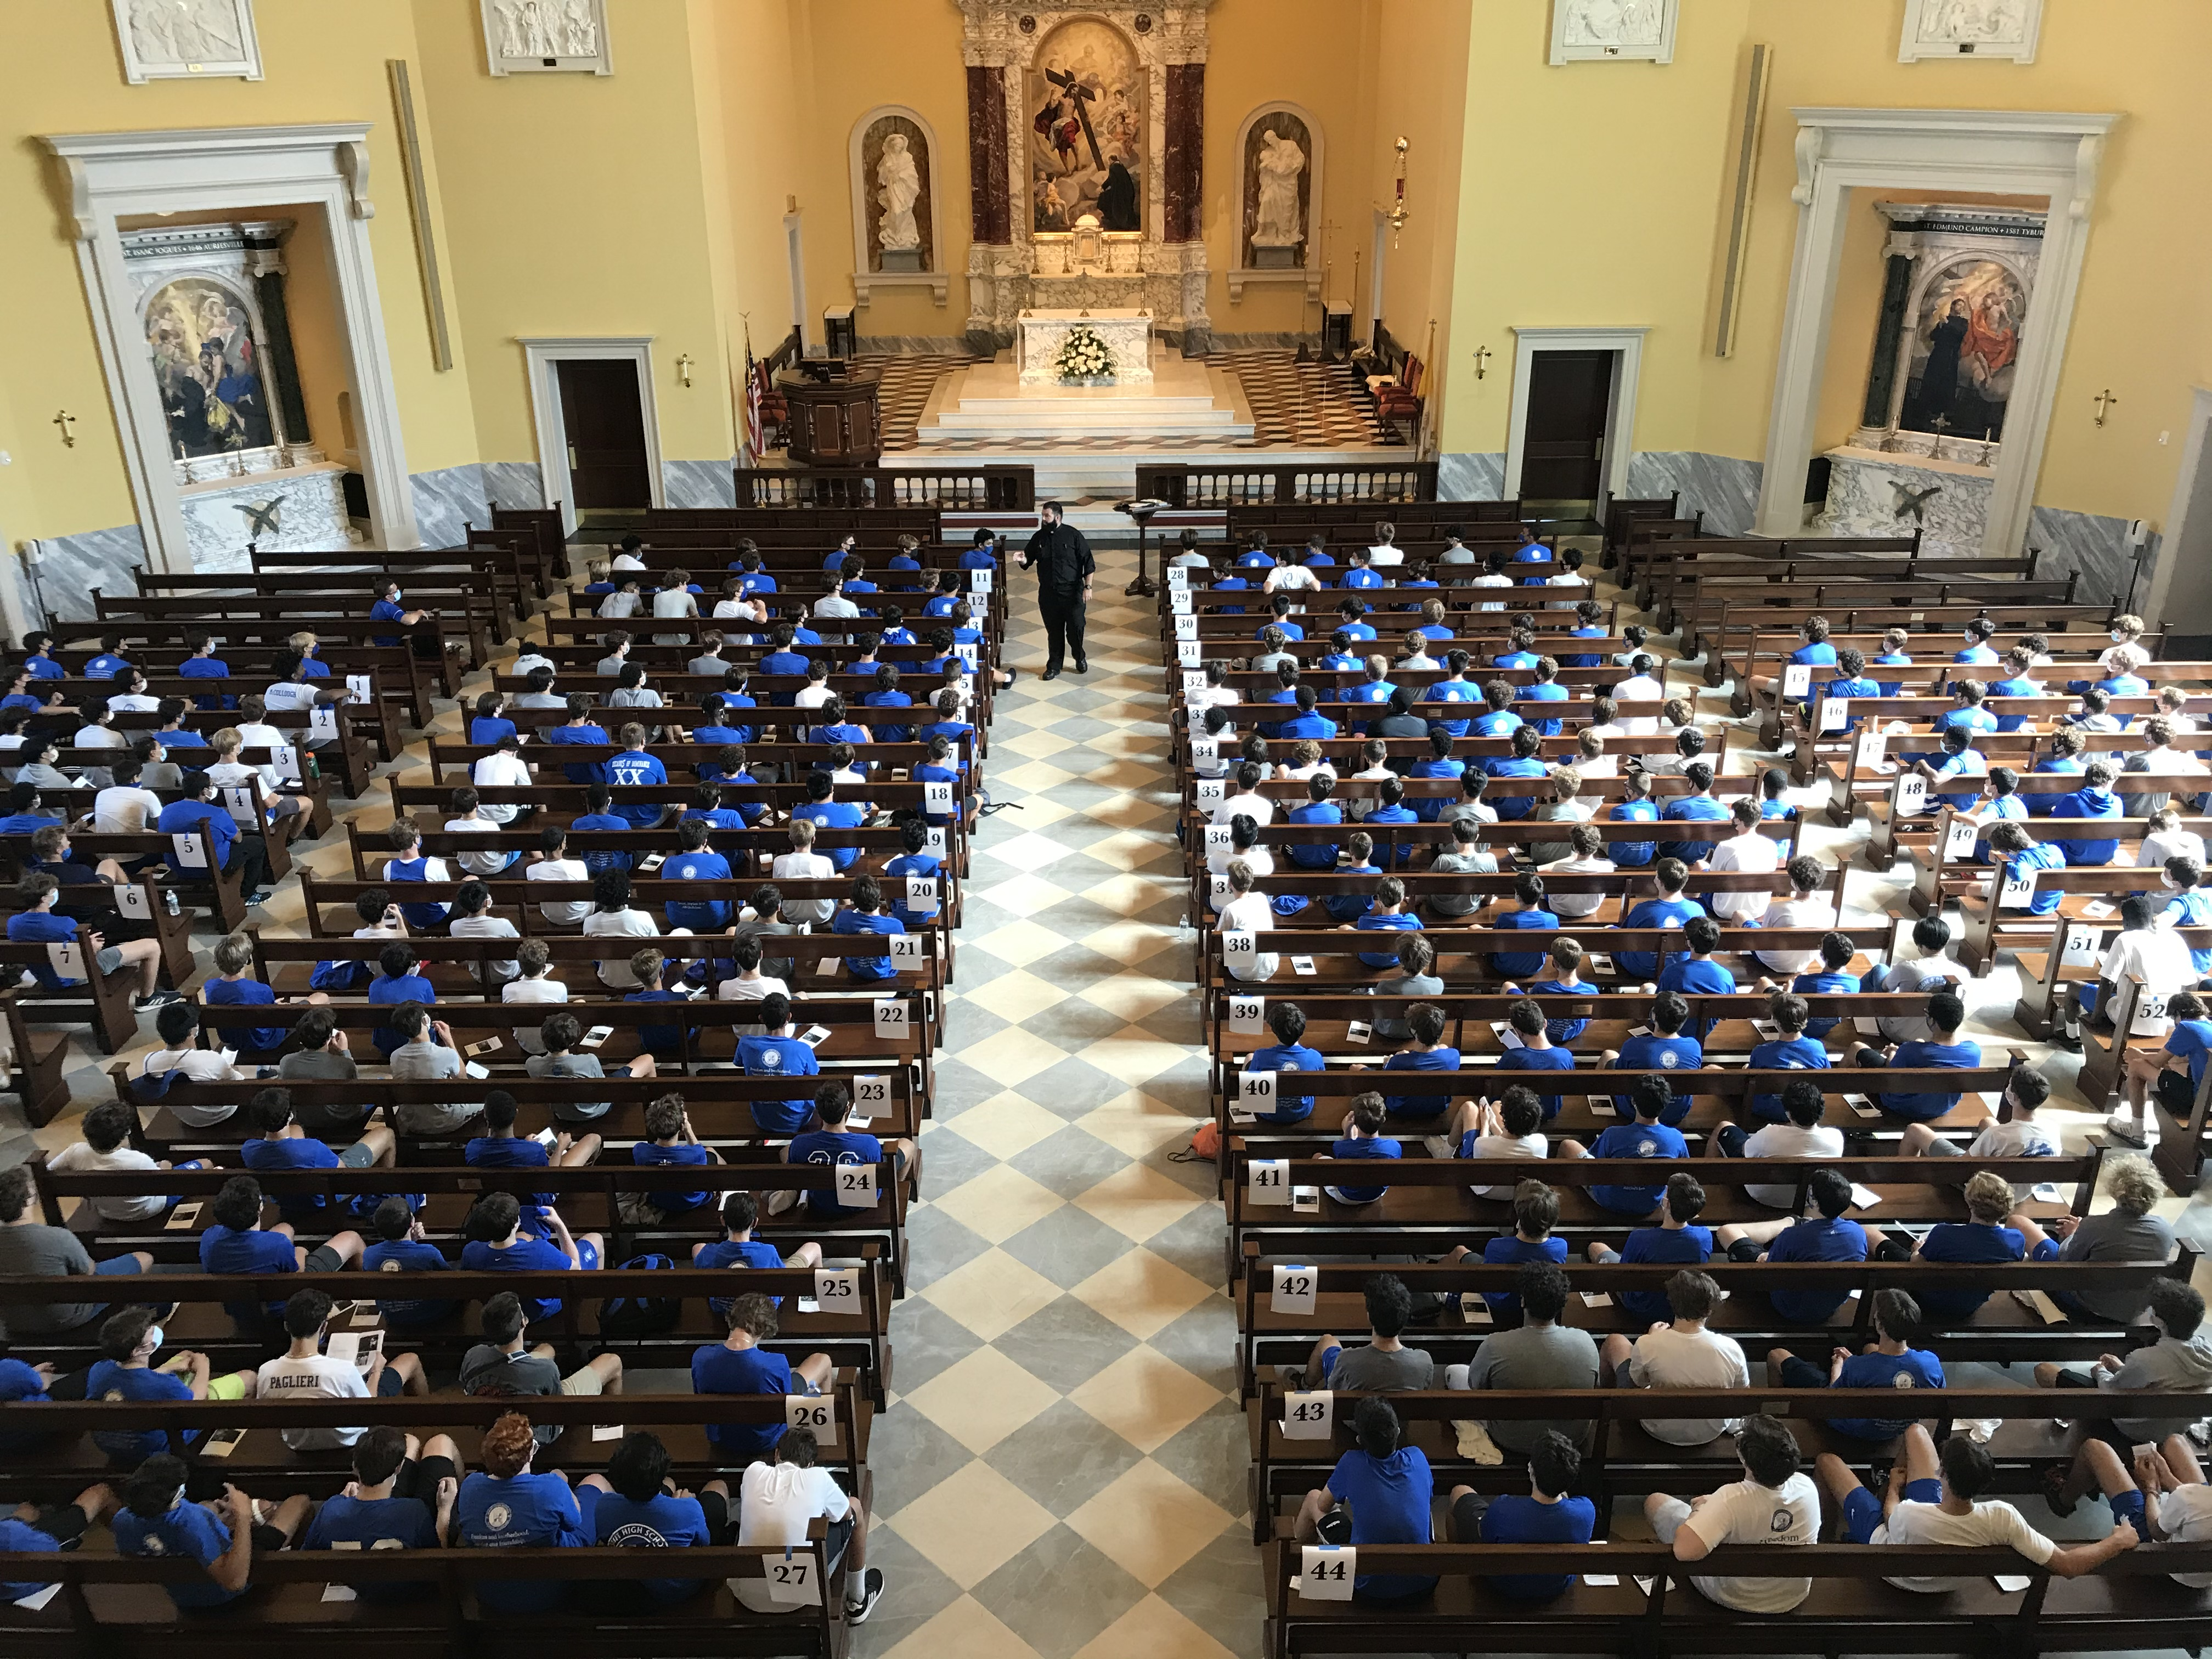 Students fill Holy Cross Chapel, renovated in 2018. / Jimmy Mitchell